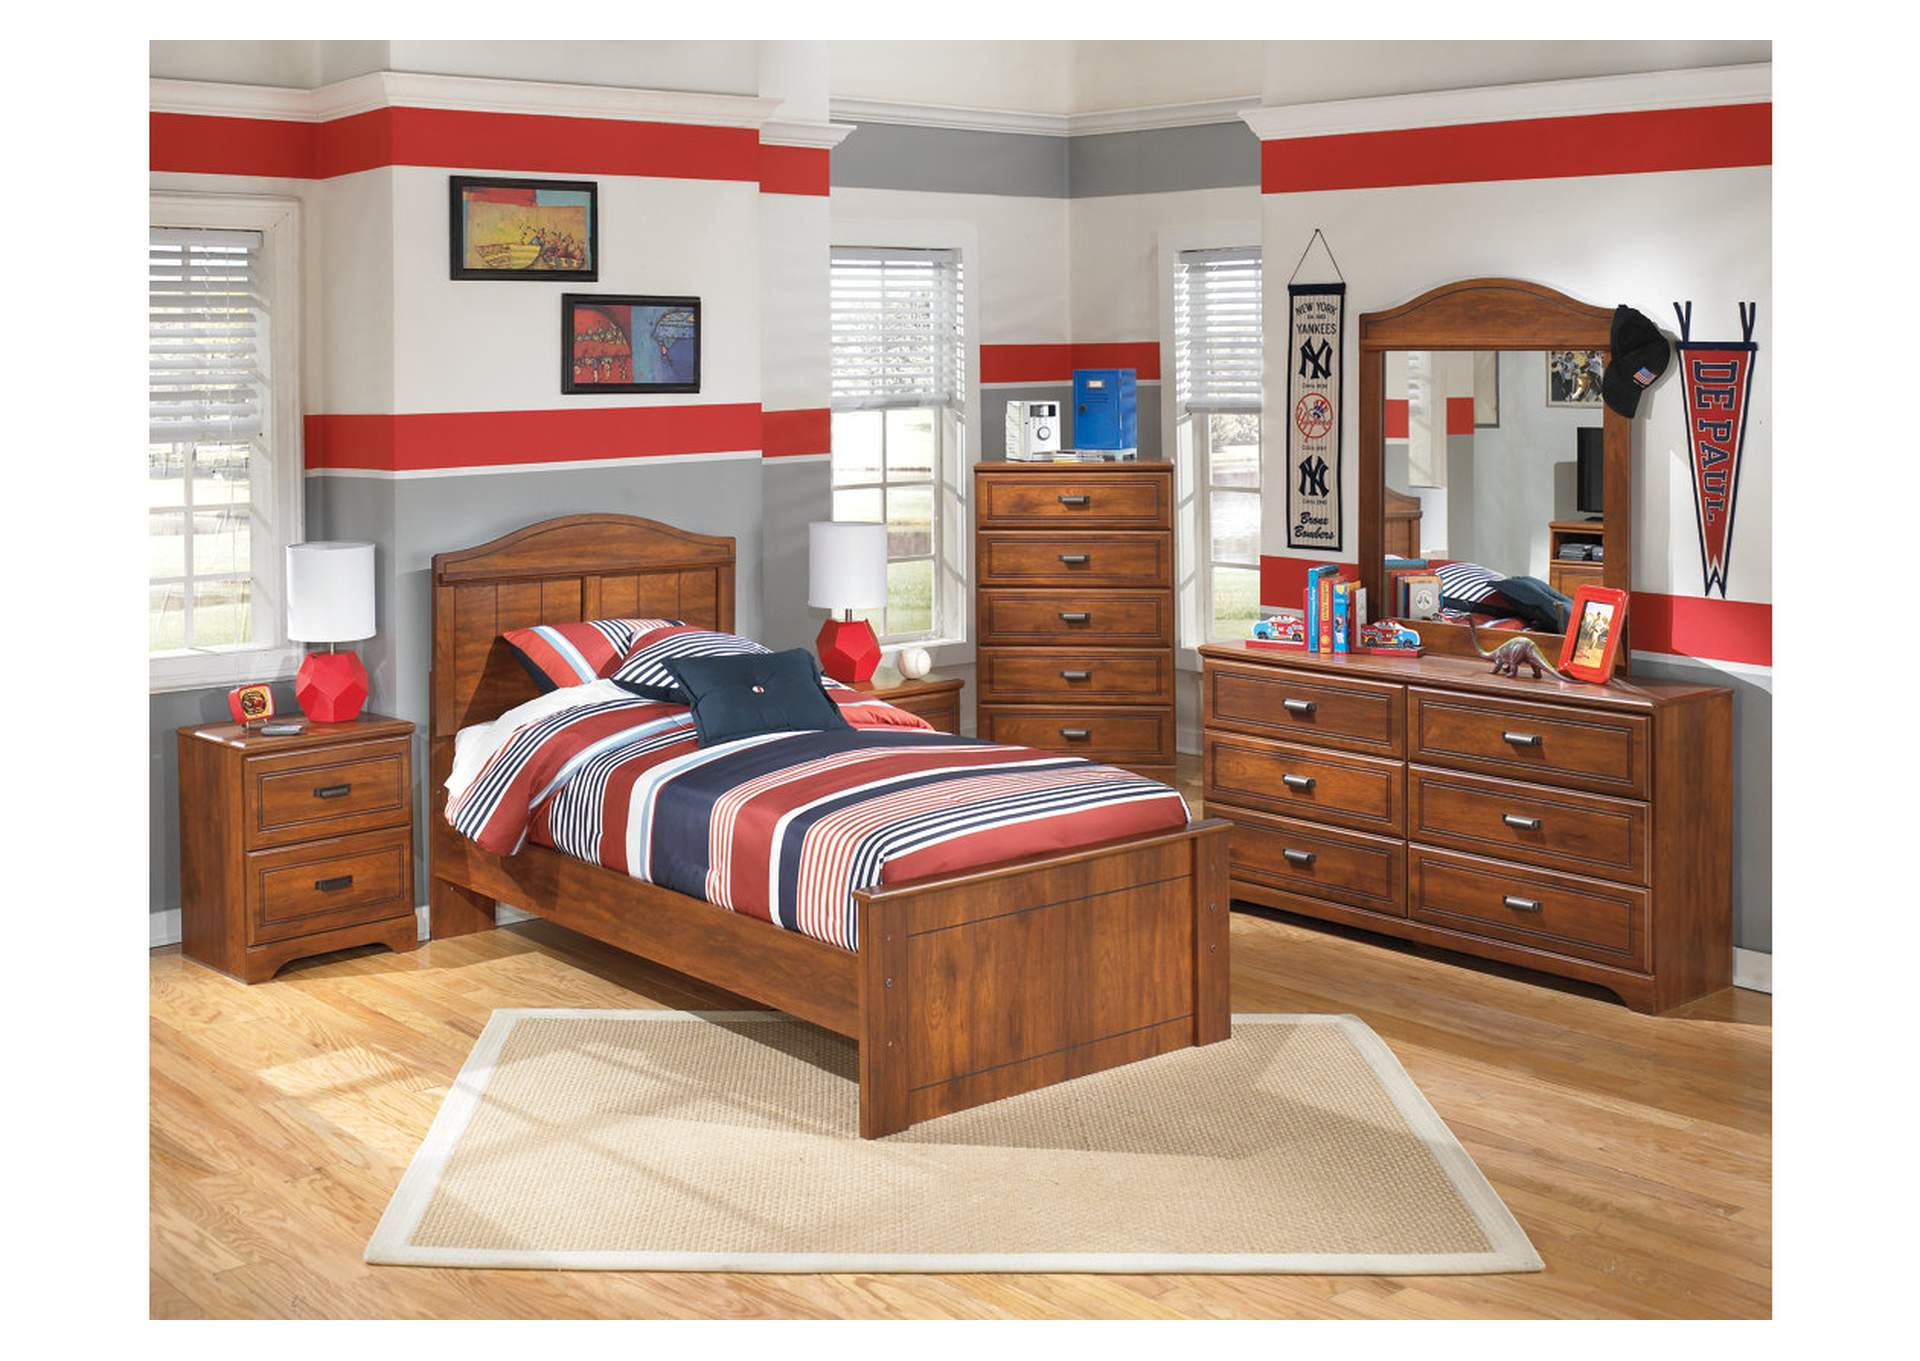 Barchan Twin Panel Bed w/Dresser, Mirror, Drawer Chest & 2 Nightstands,Signature Design By Ashley